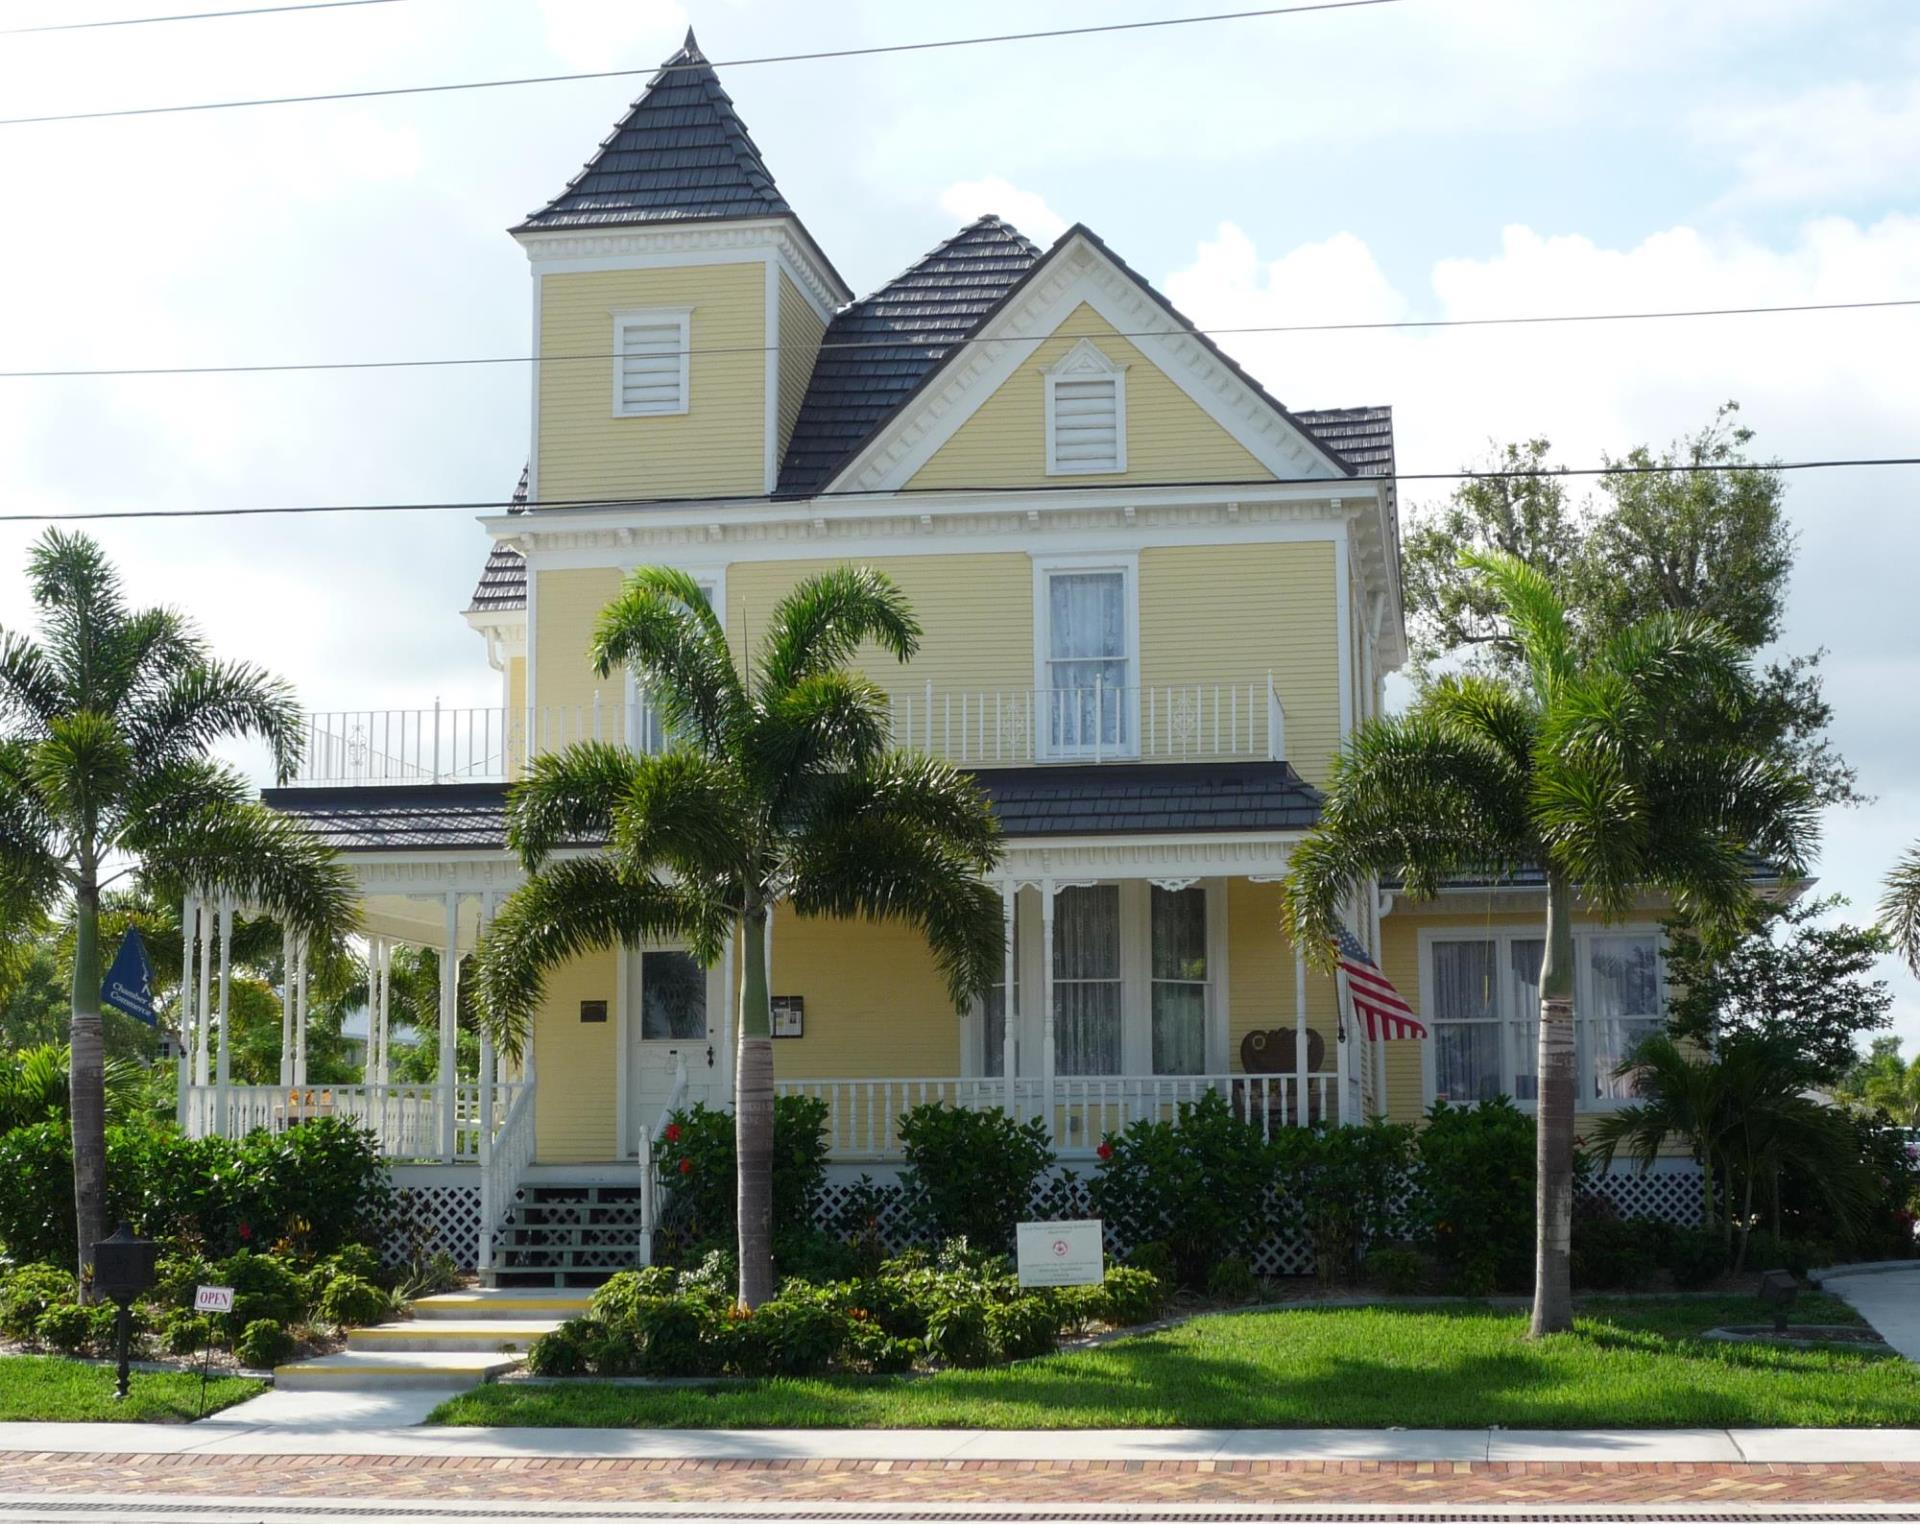 Photo of AC Freeman House. Historical two story yellow home white trim with wrap around porch